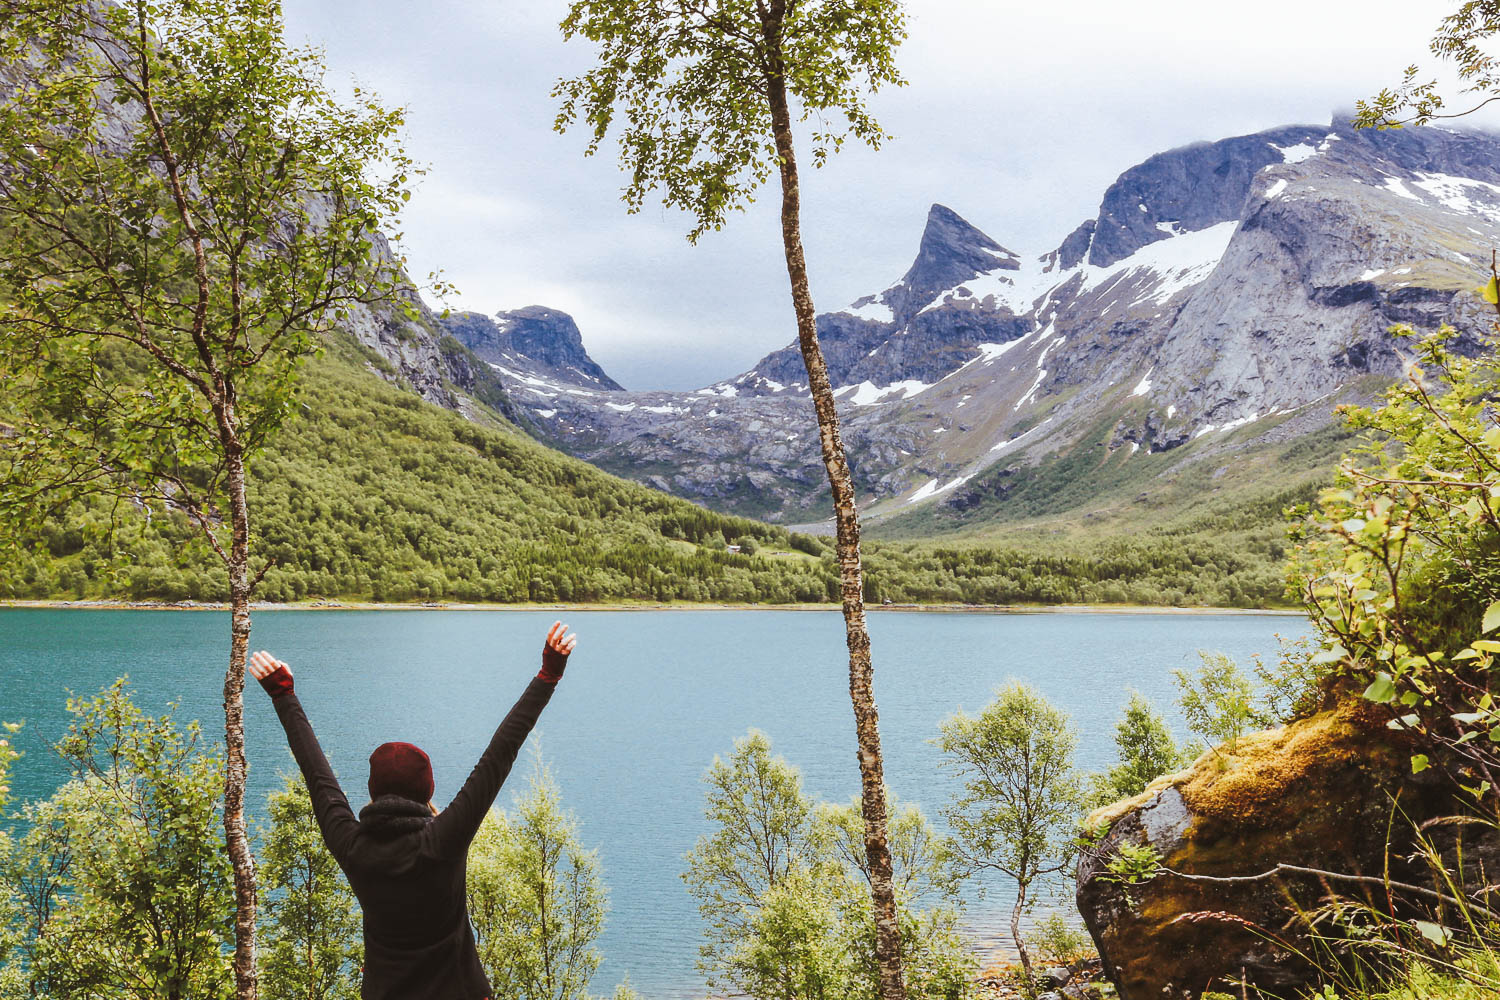 … or exploring the Norwegian wilderness in Bodø? It's up to you!